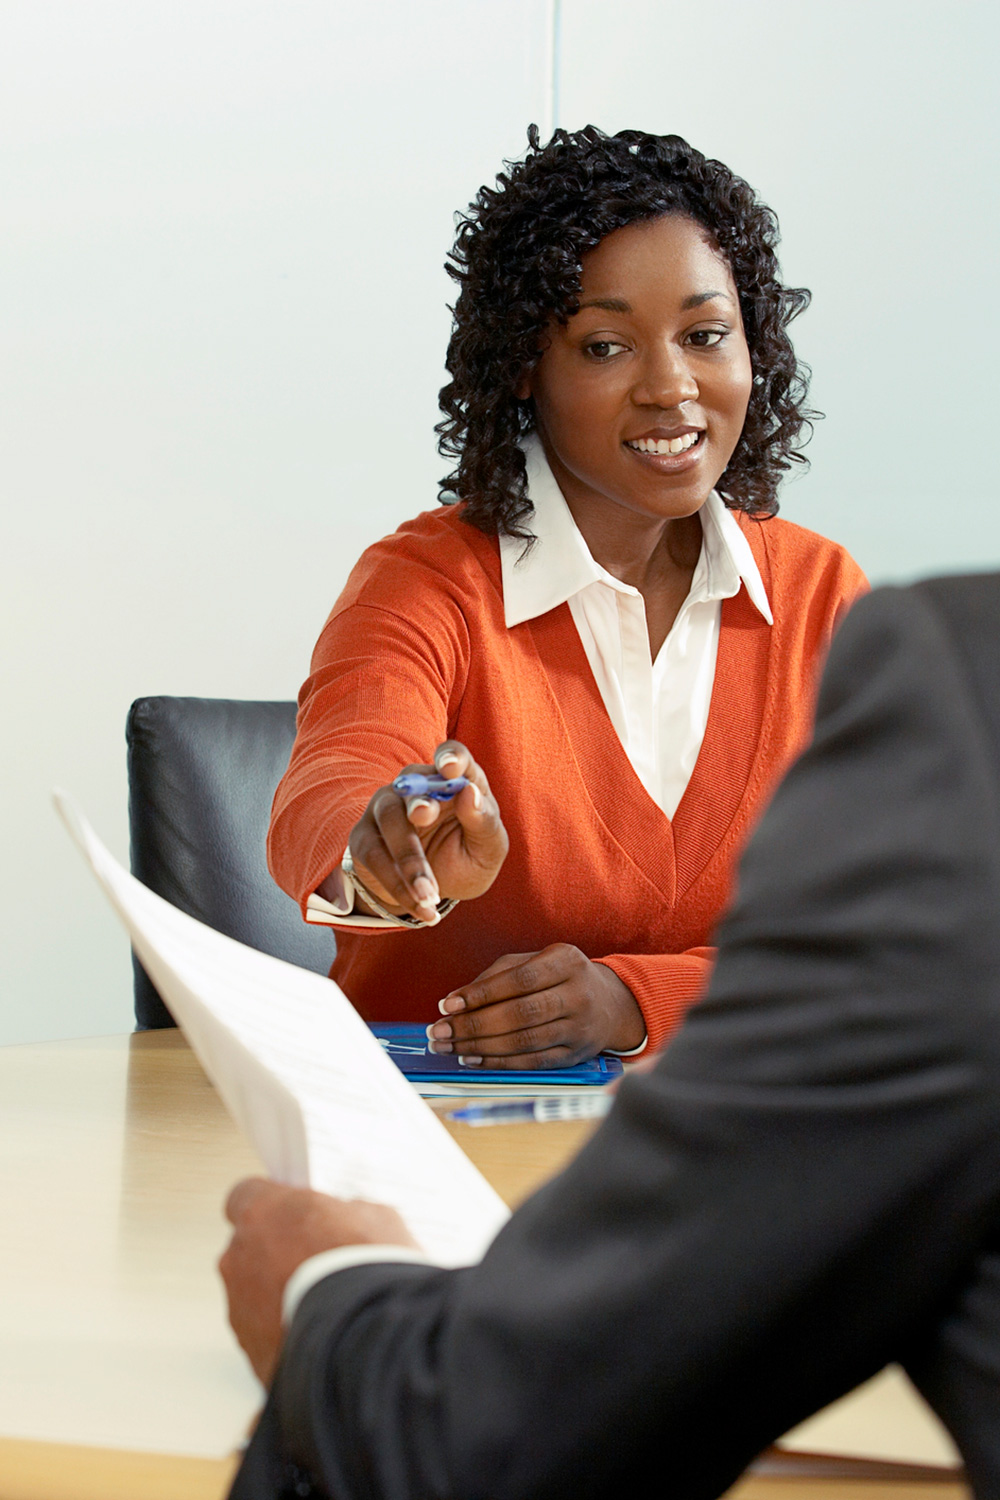 Appraisal training for managers